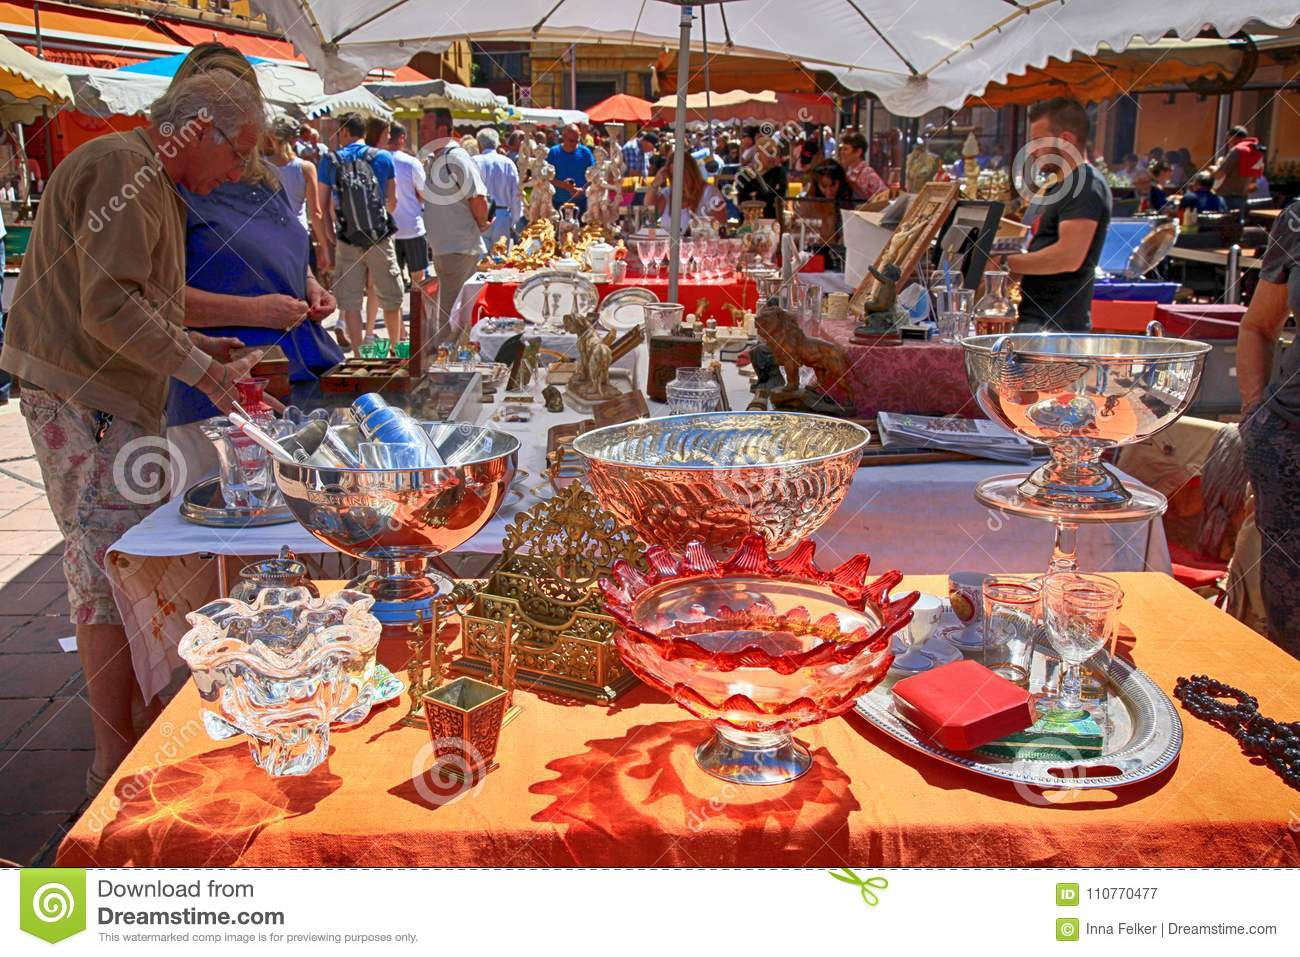 Tourists and local people buy old goods at famous antique market